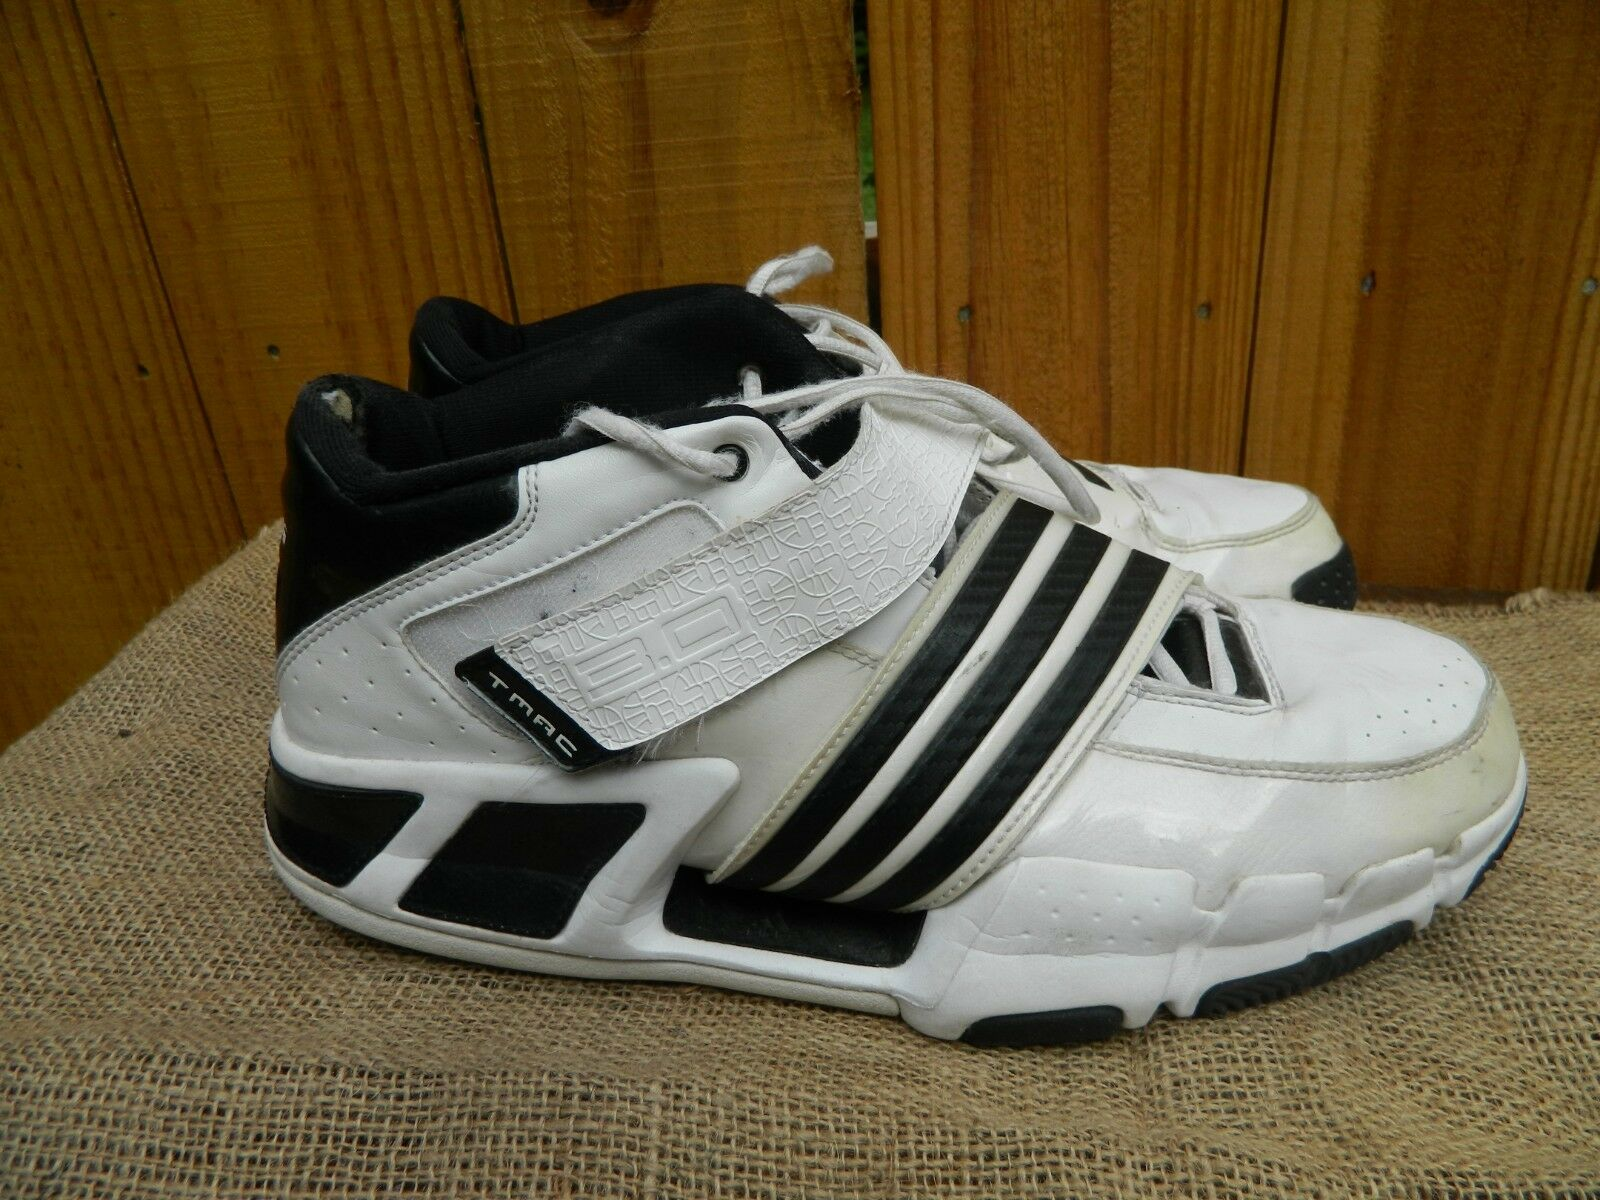 Mens Adidas TMAC 3.0 Basketball shoes Tracy McGrady White Size 12. 2008 Model